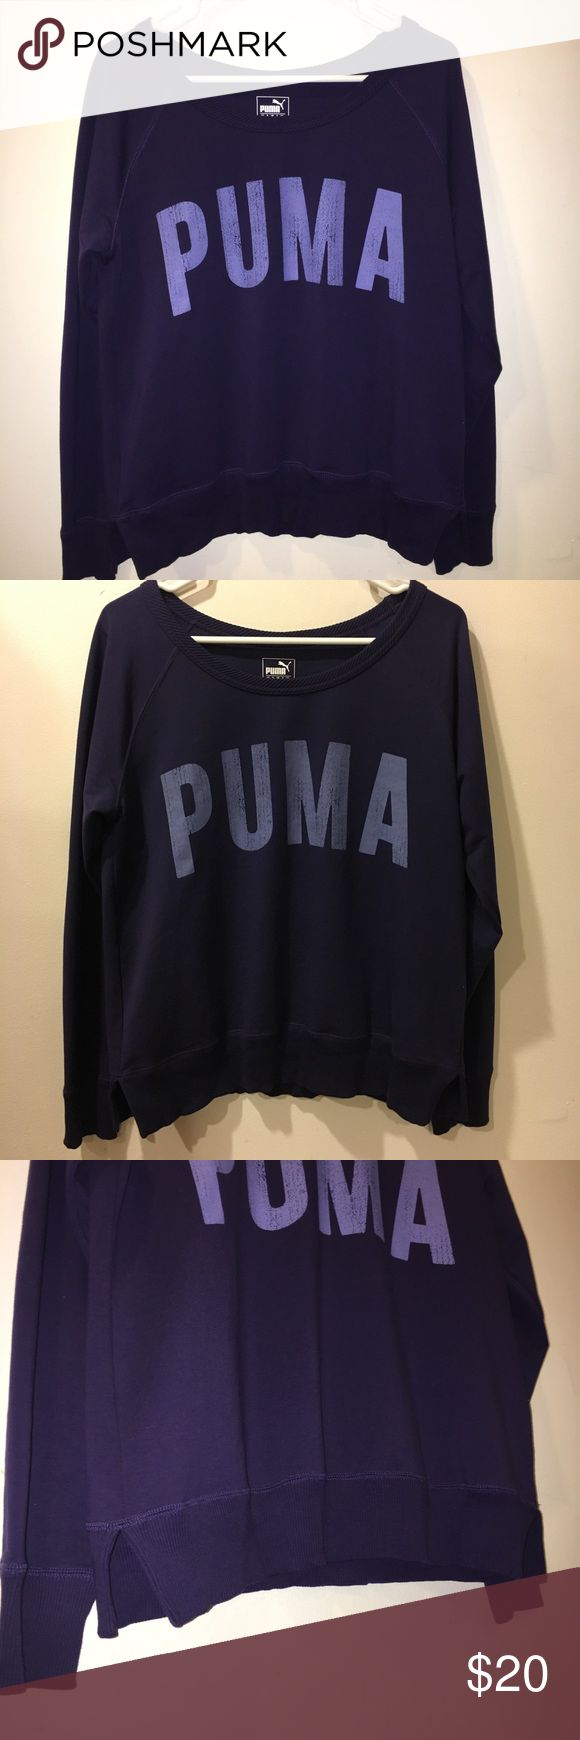 PUMA pull over sweat shirt purple active wear top Brand new puma active wear sweatshirt. Purple with lighter purple text. Logo embroidered in the back and Dry Cell technology. Puma Tops Sweatshirts & Hoodies